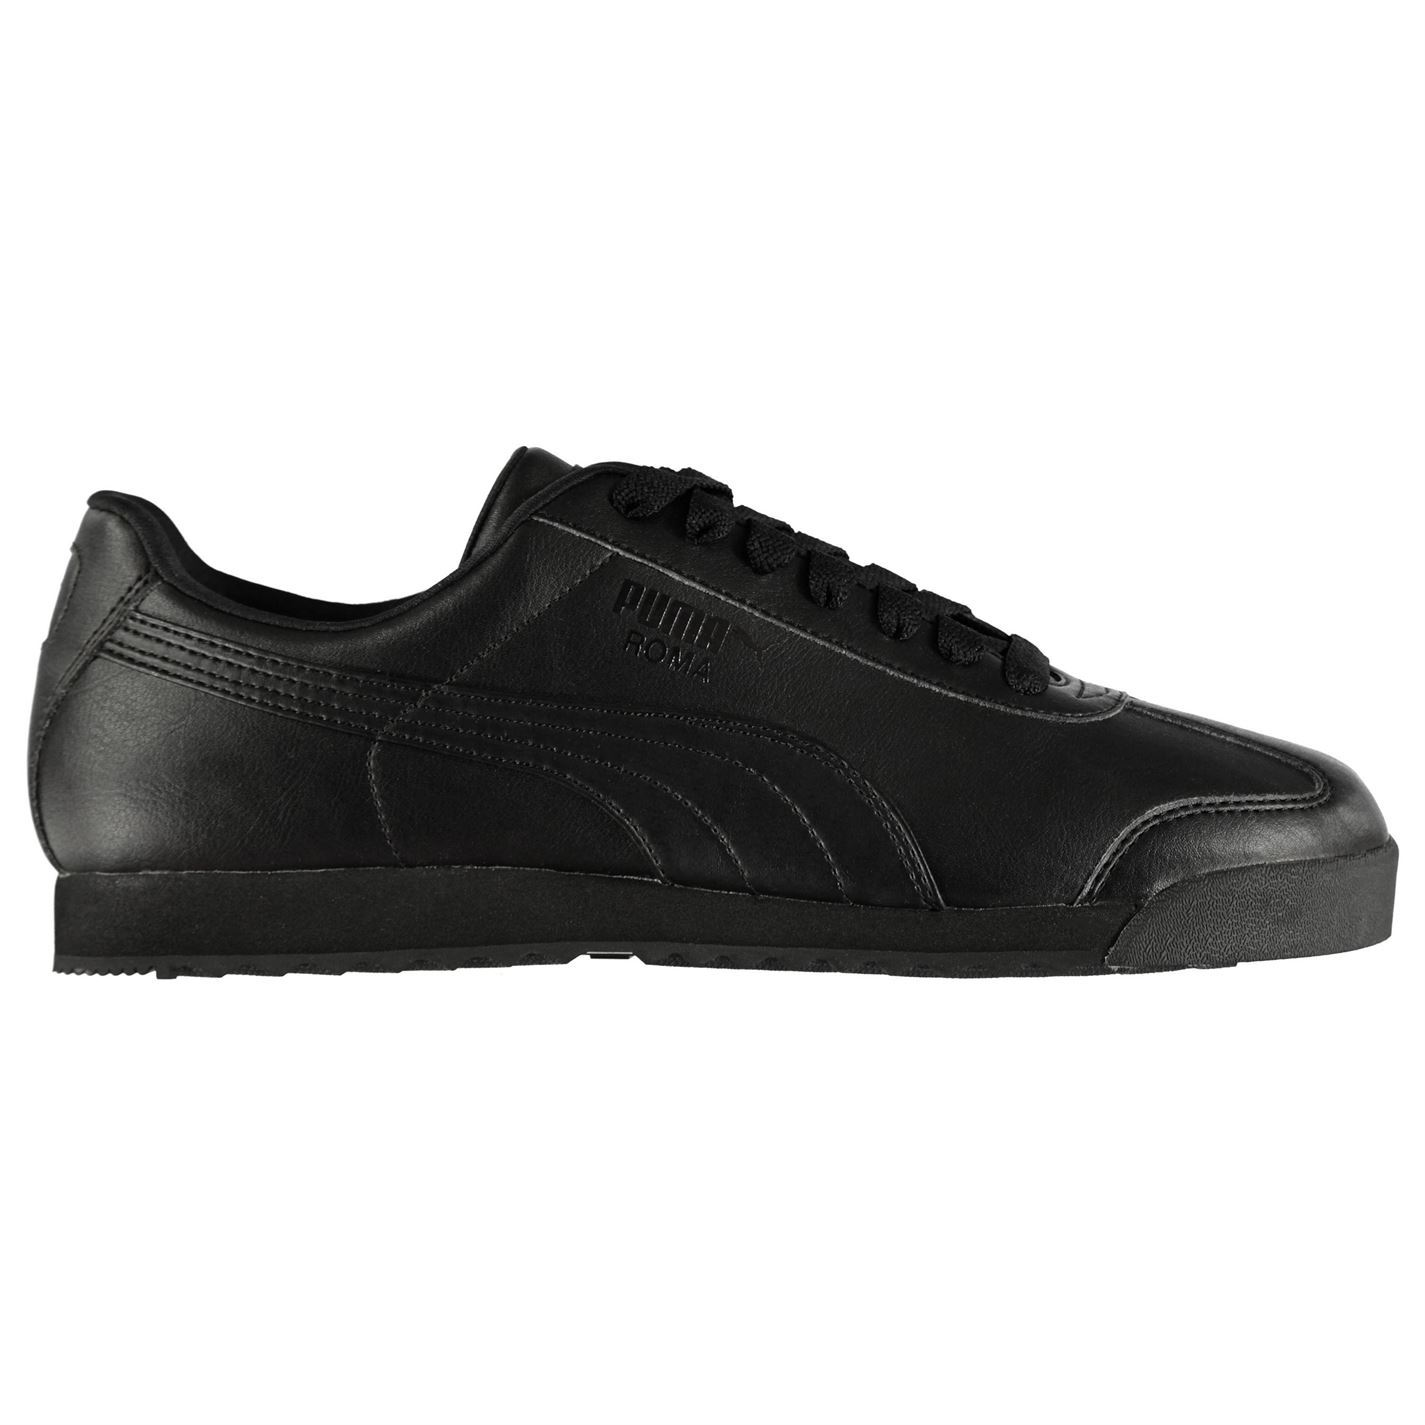 Puma-Roma-Basic-Trainers-Mens-Athleisure-Footwear-Shoes-Sneakers thumbnail 4